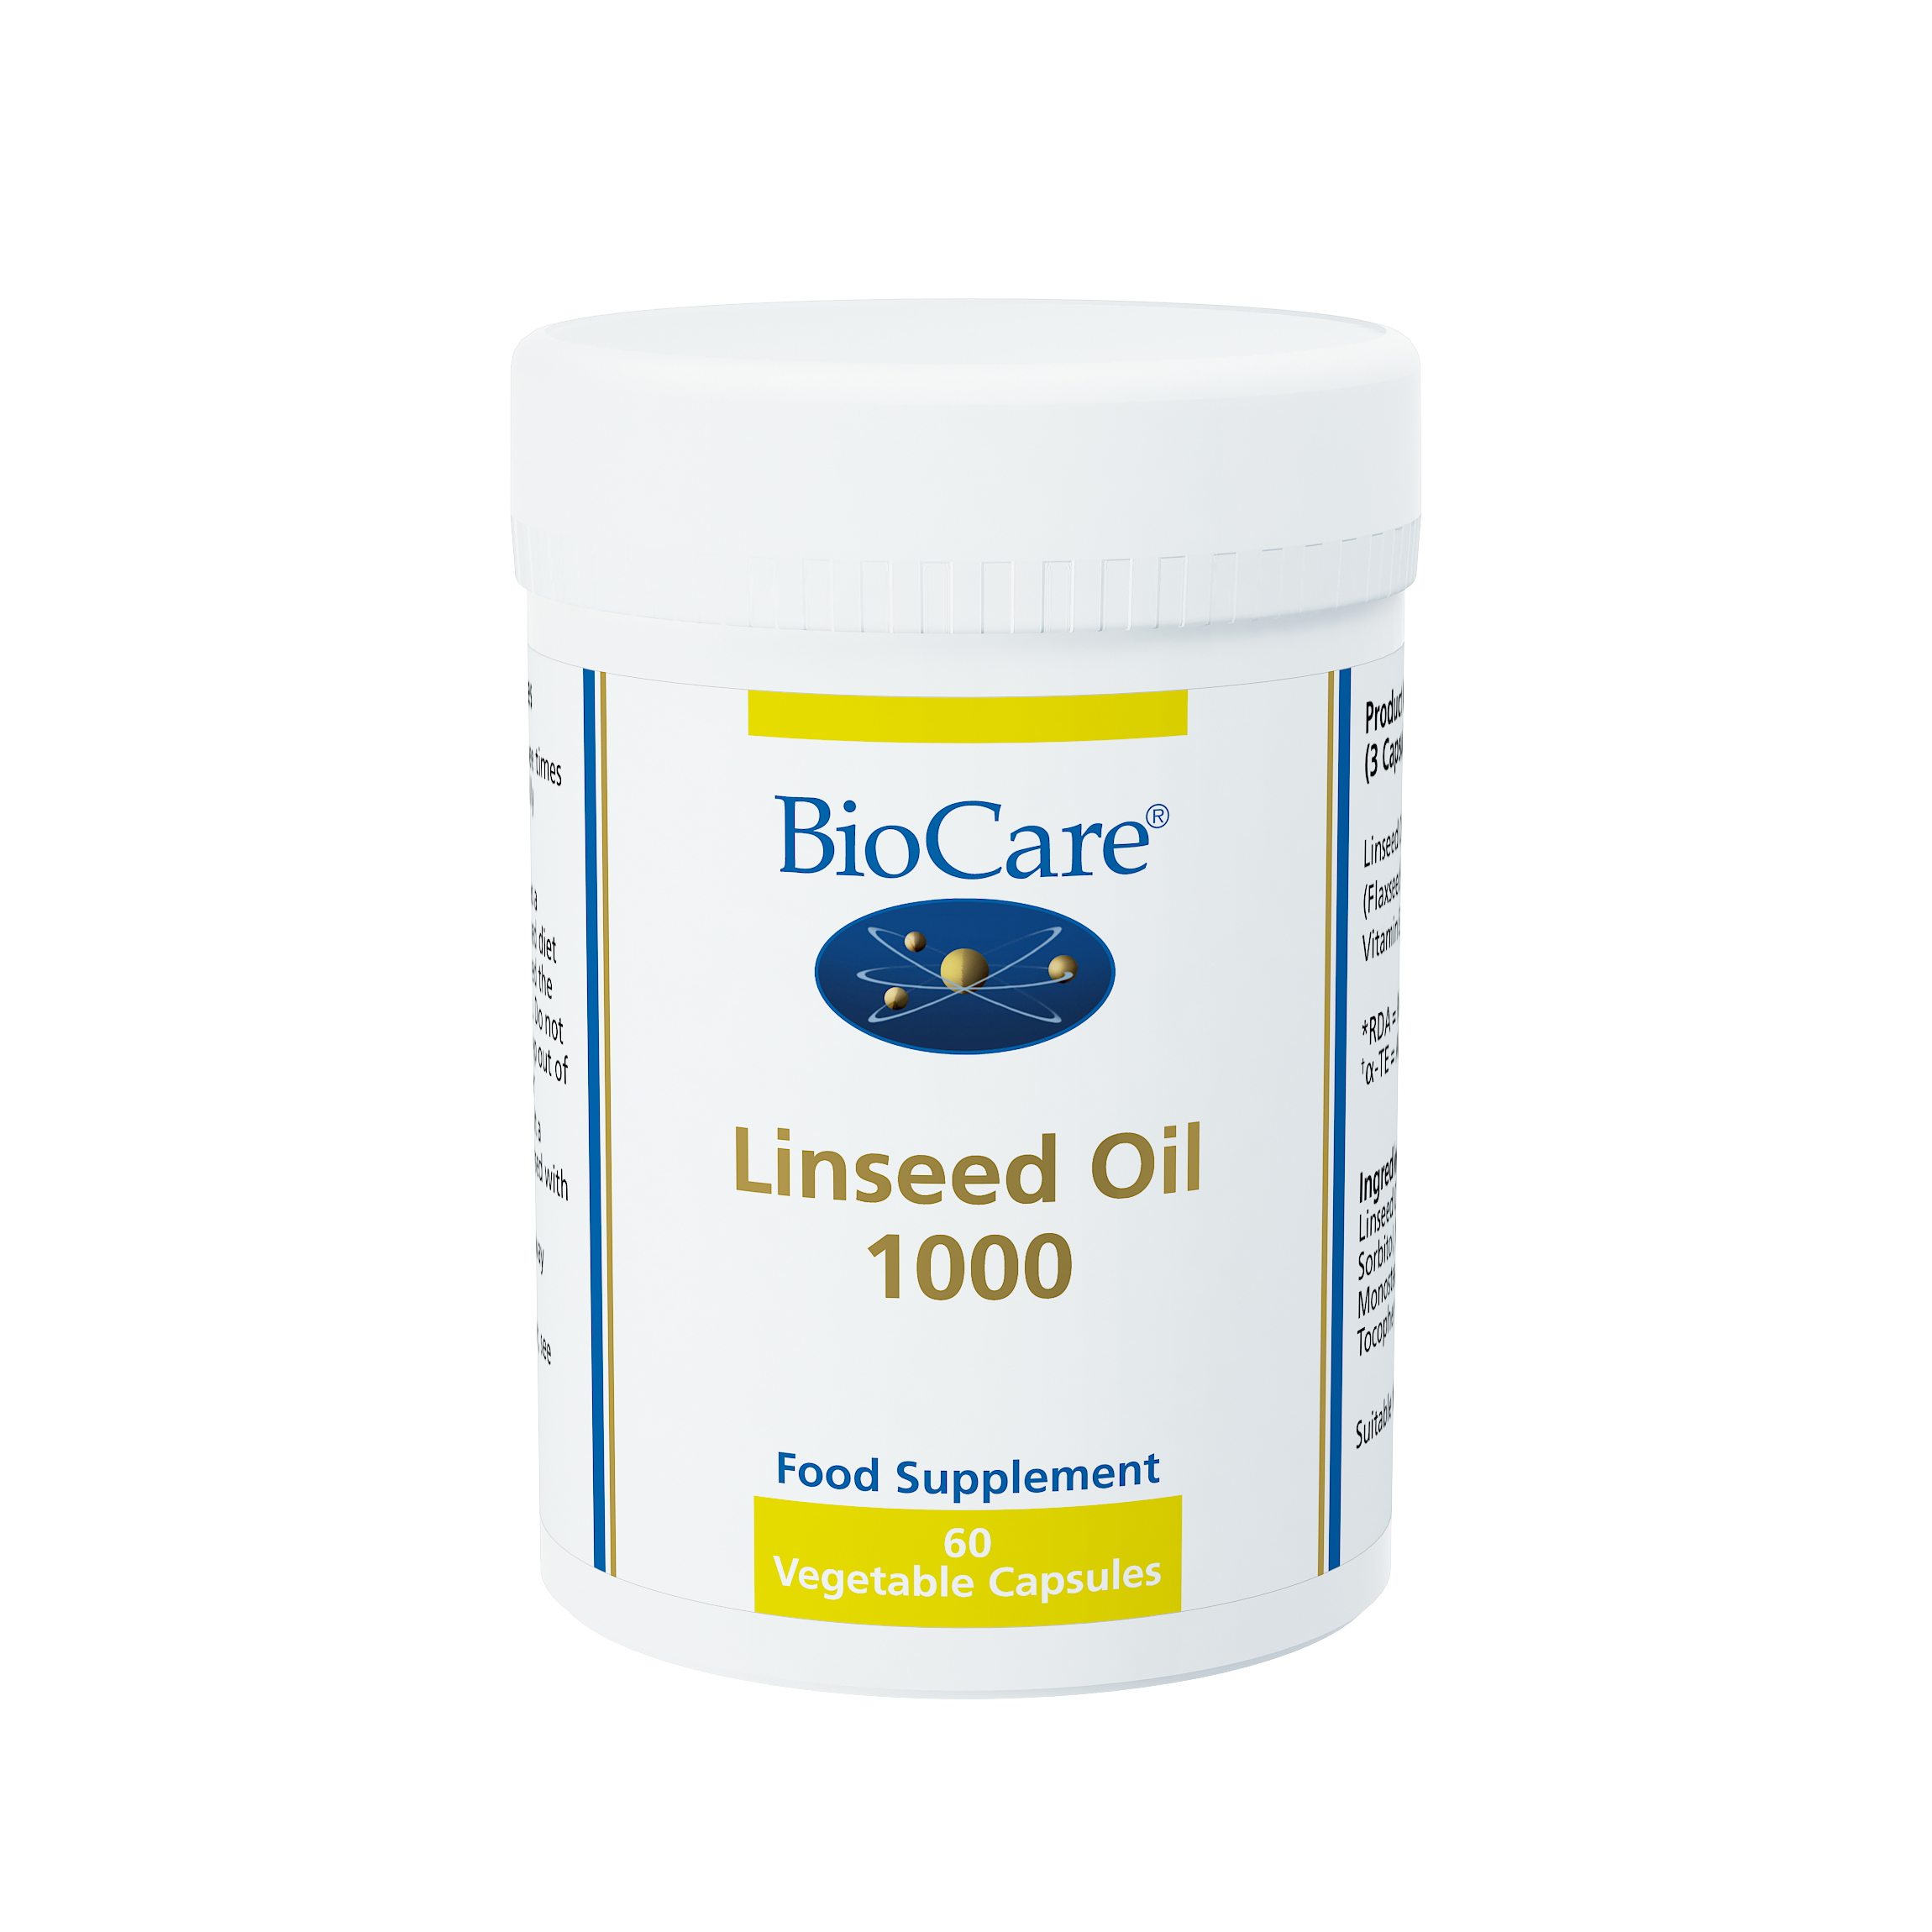 BioCare Linseed Oil 1000 (Flaxseed Oil)